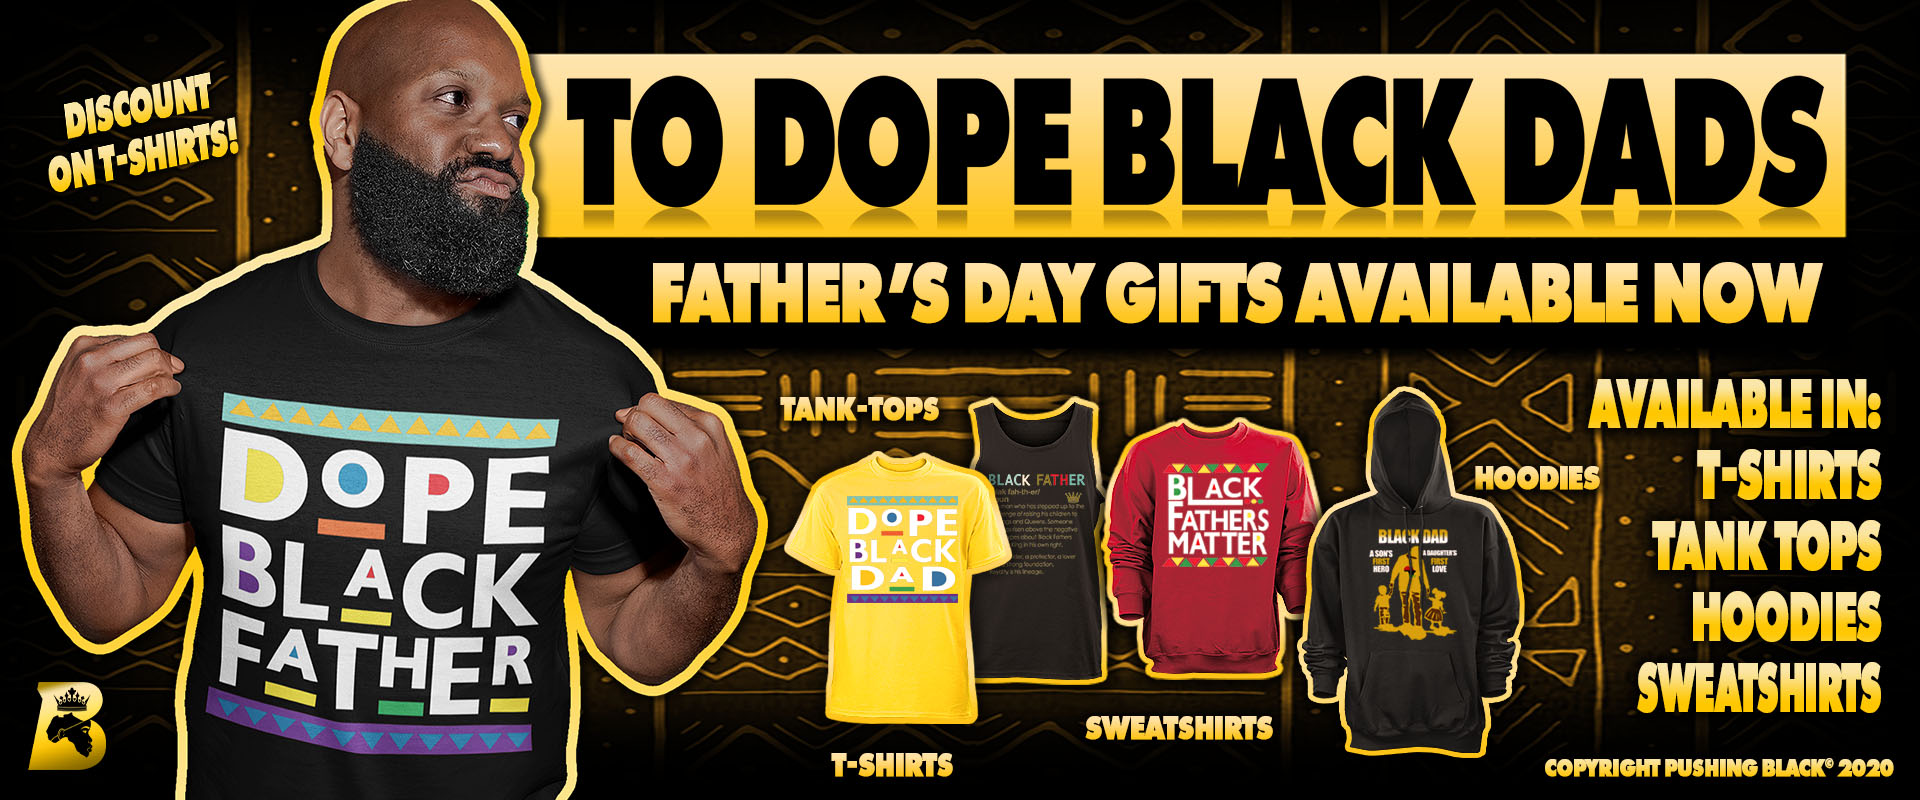 father-s-day-banners-homepage.jpg